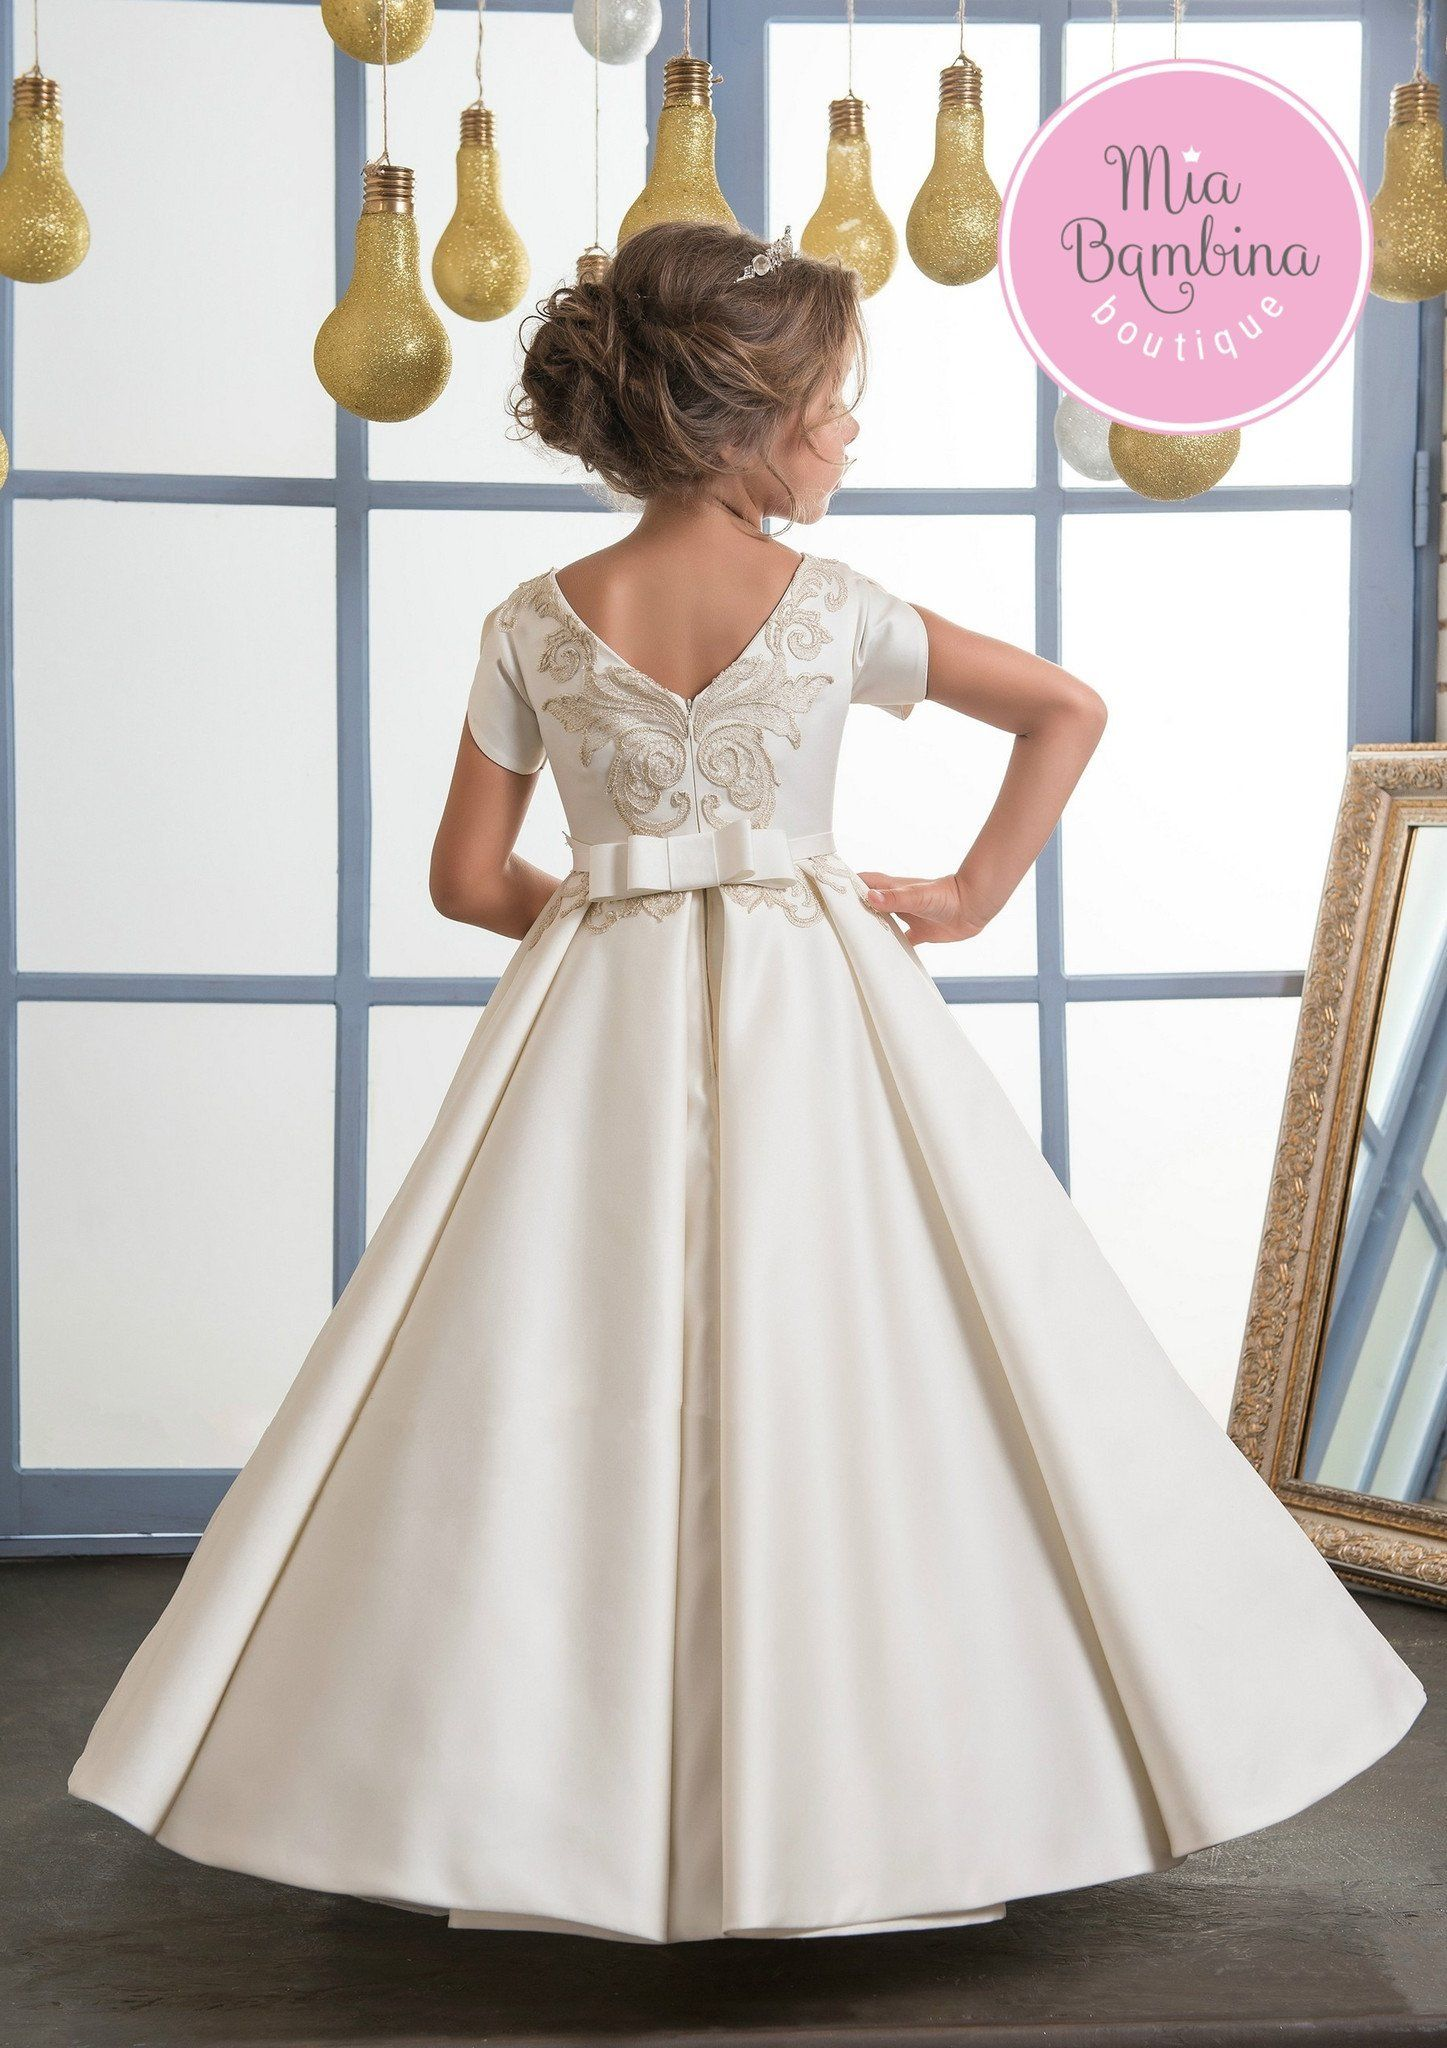 b226cd83ec ... of any flower girl. This A-line satin dress features a jewel neckline